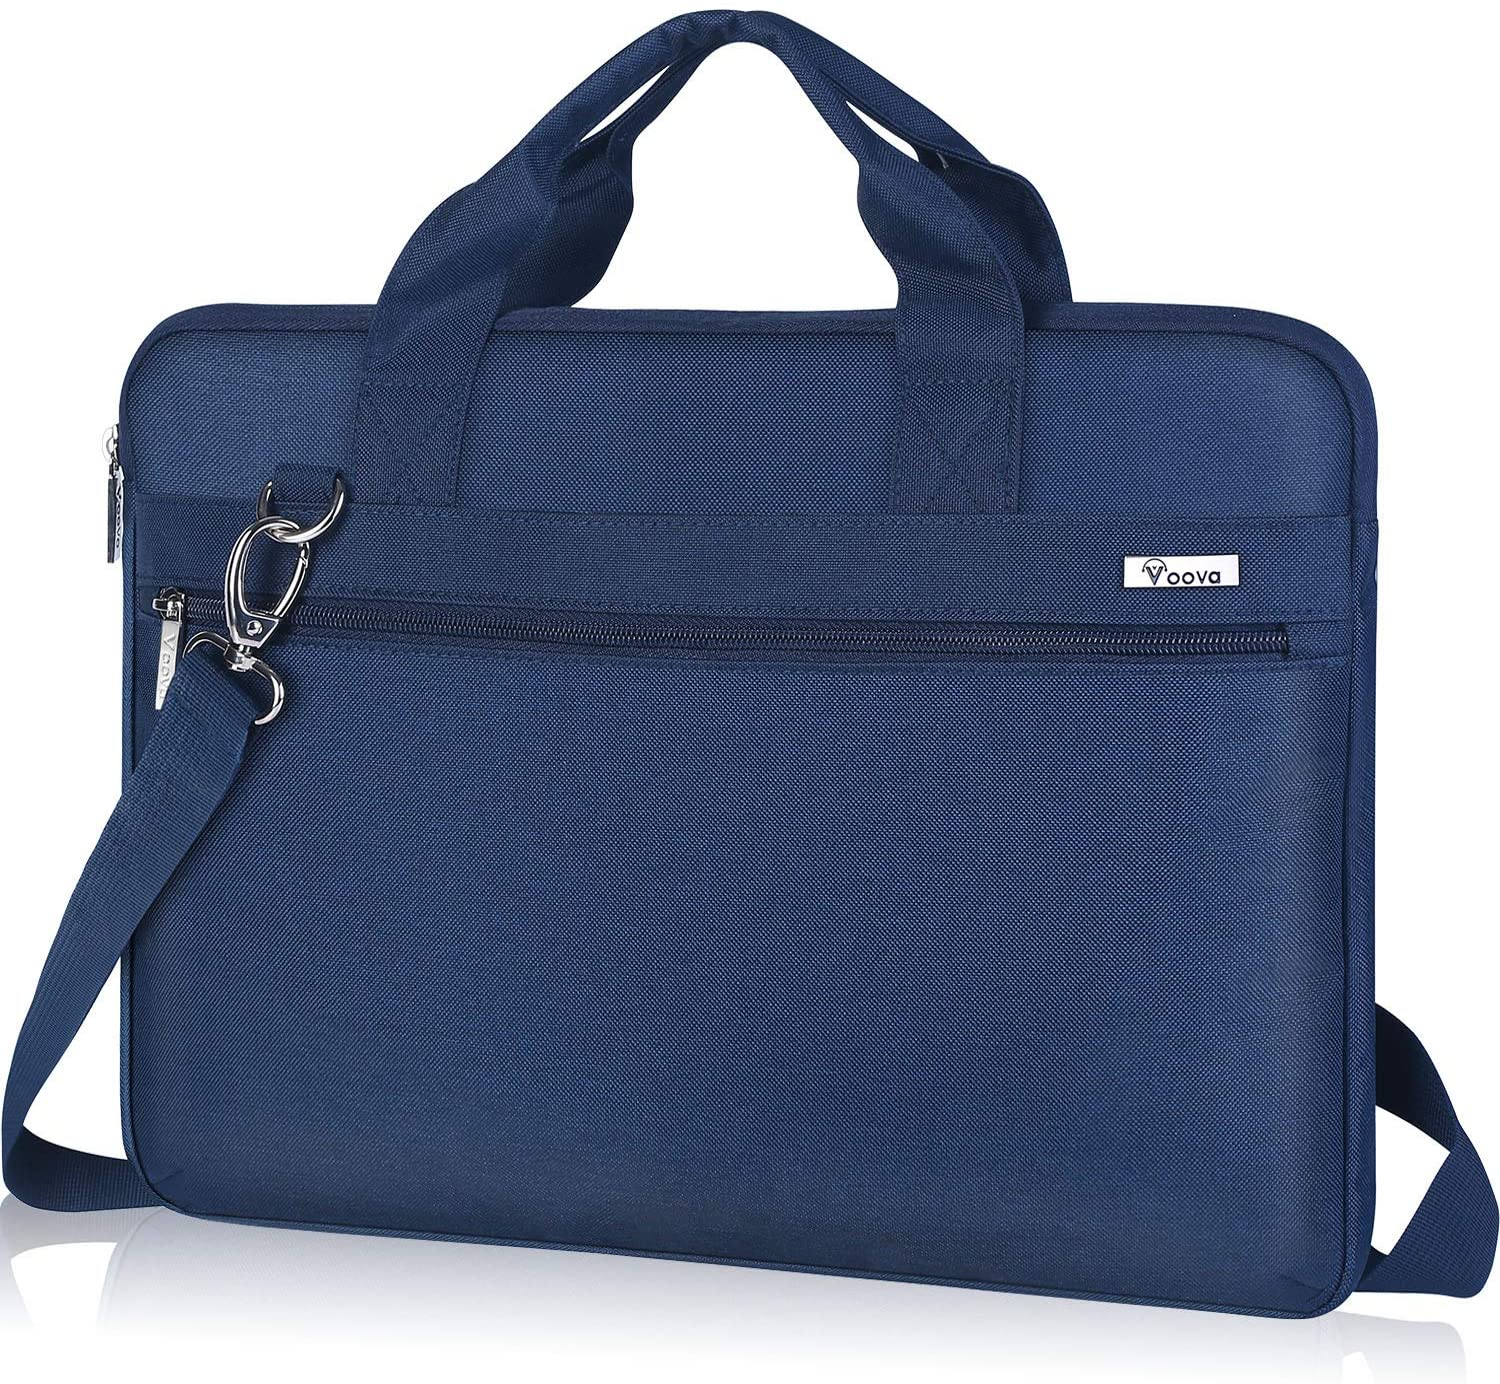 Voova Laptop Sleeve Shoulder Bag 14-15.6 Inch Carry Case, Upgrade Computer Messenger Briefcase Compatible with MacBook Pro 16 15, Surface Book 2 15, Asus Acer Dell Hp Chormebook with Organizers, Blue